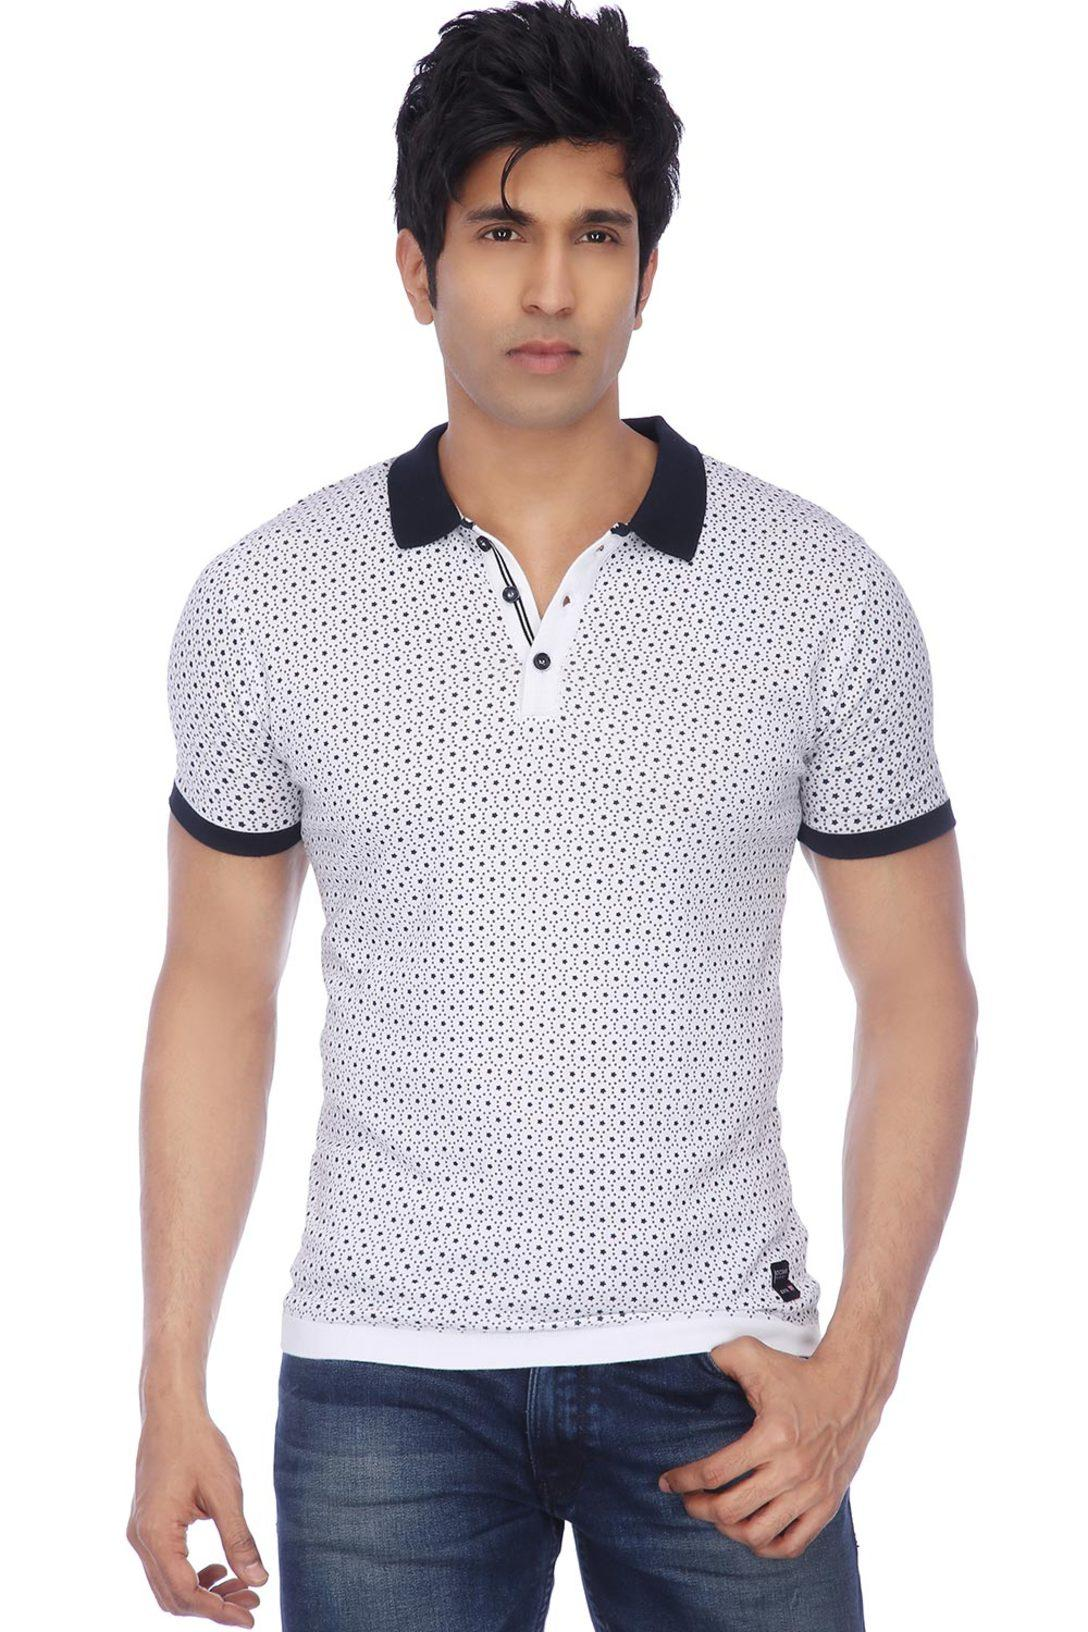 d22bde8ff8 Buy OCTAVE Octave-Mens Short Sleeves Slim Fit Print Polo T-Shirt   Shoppers  Stop